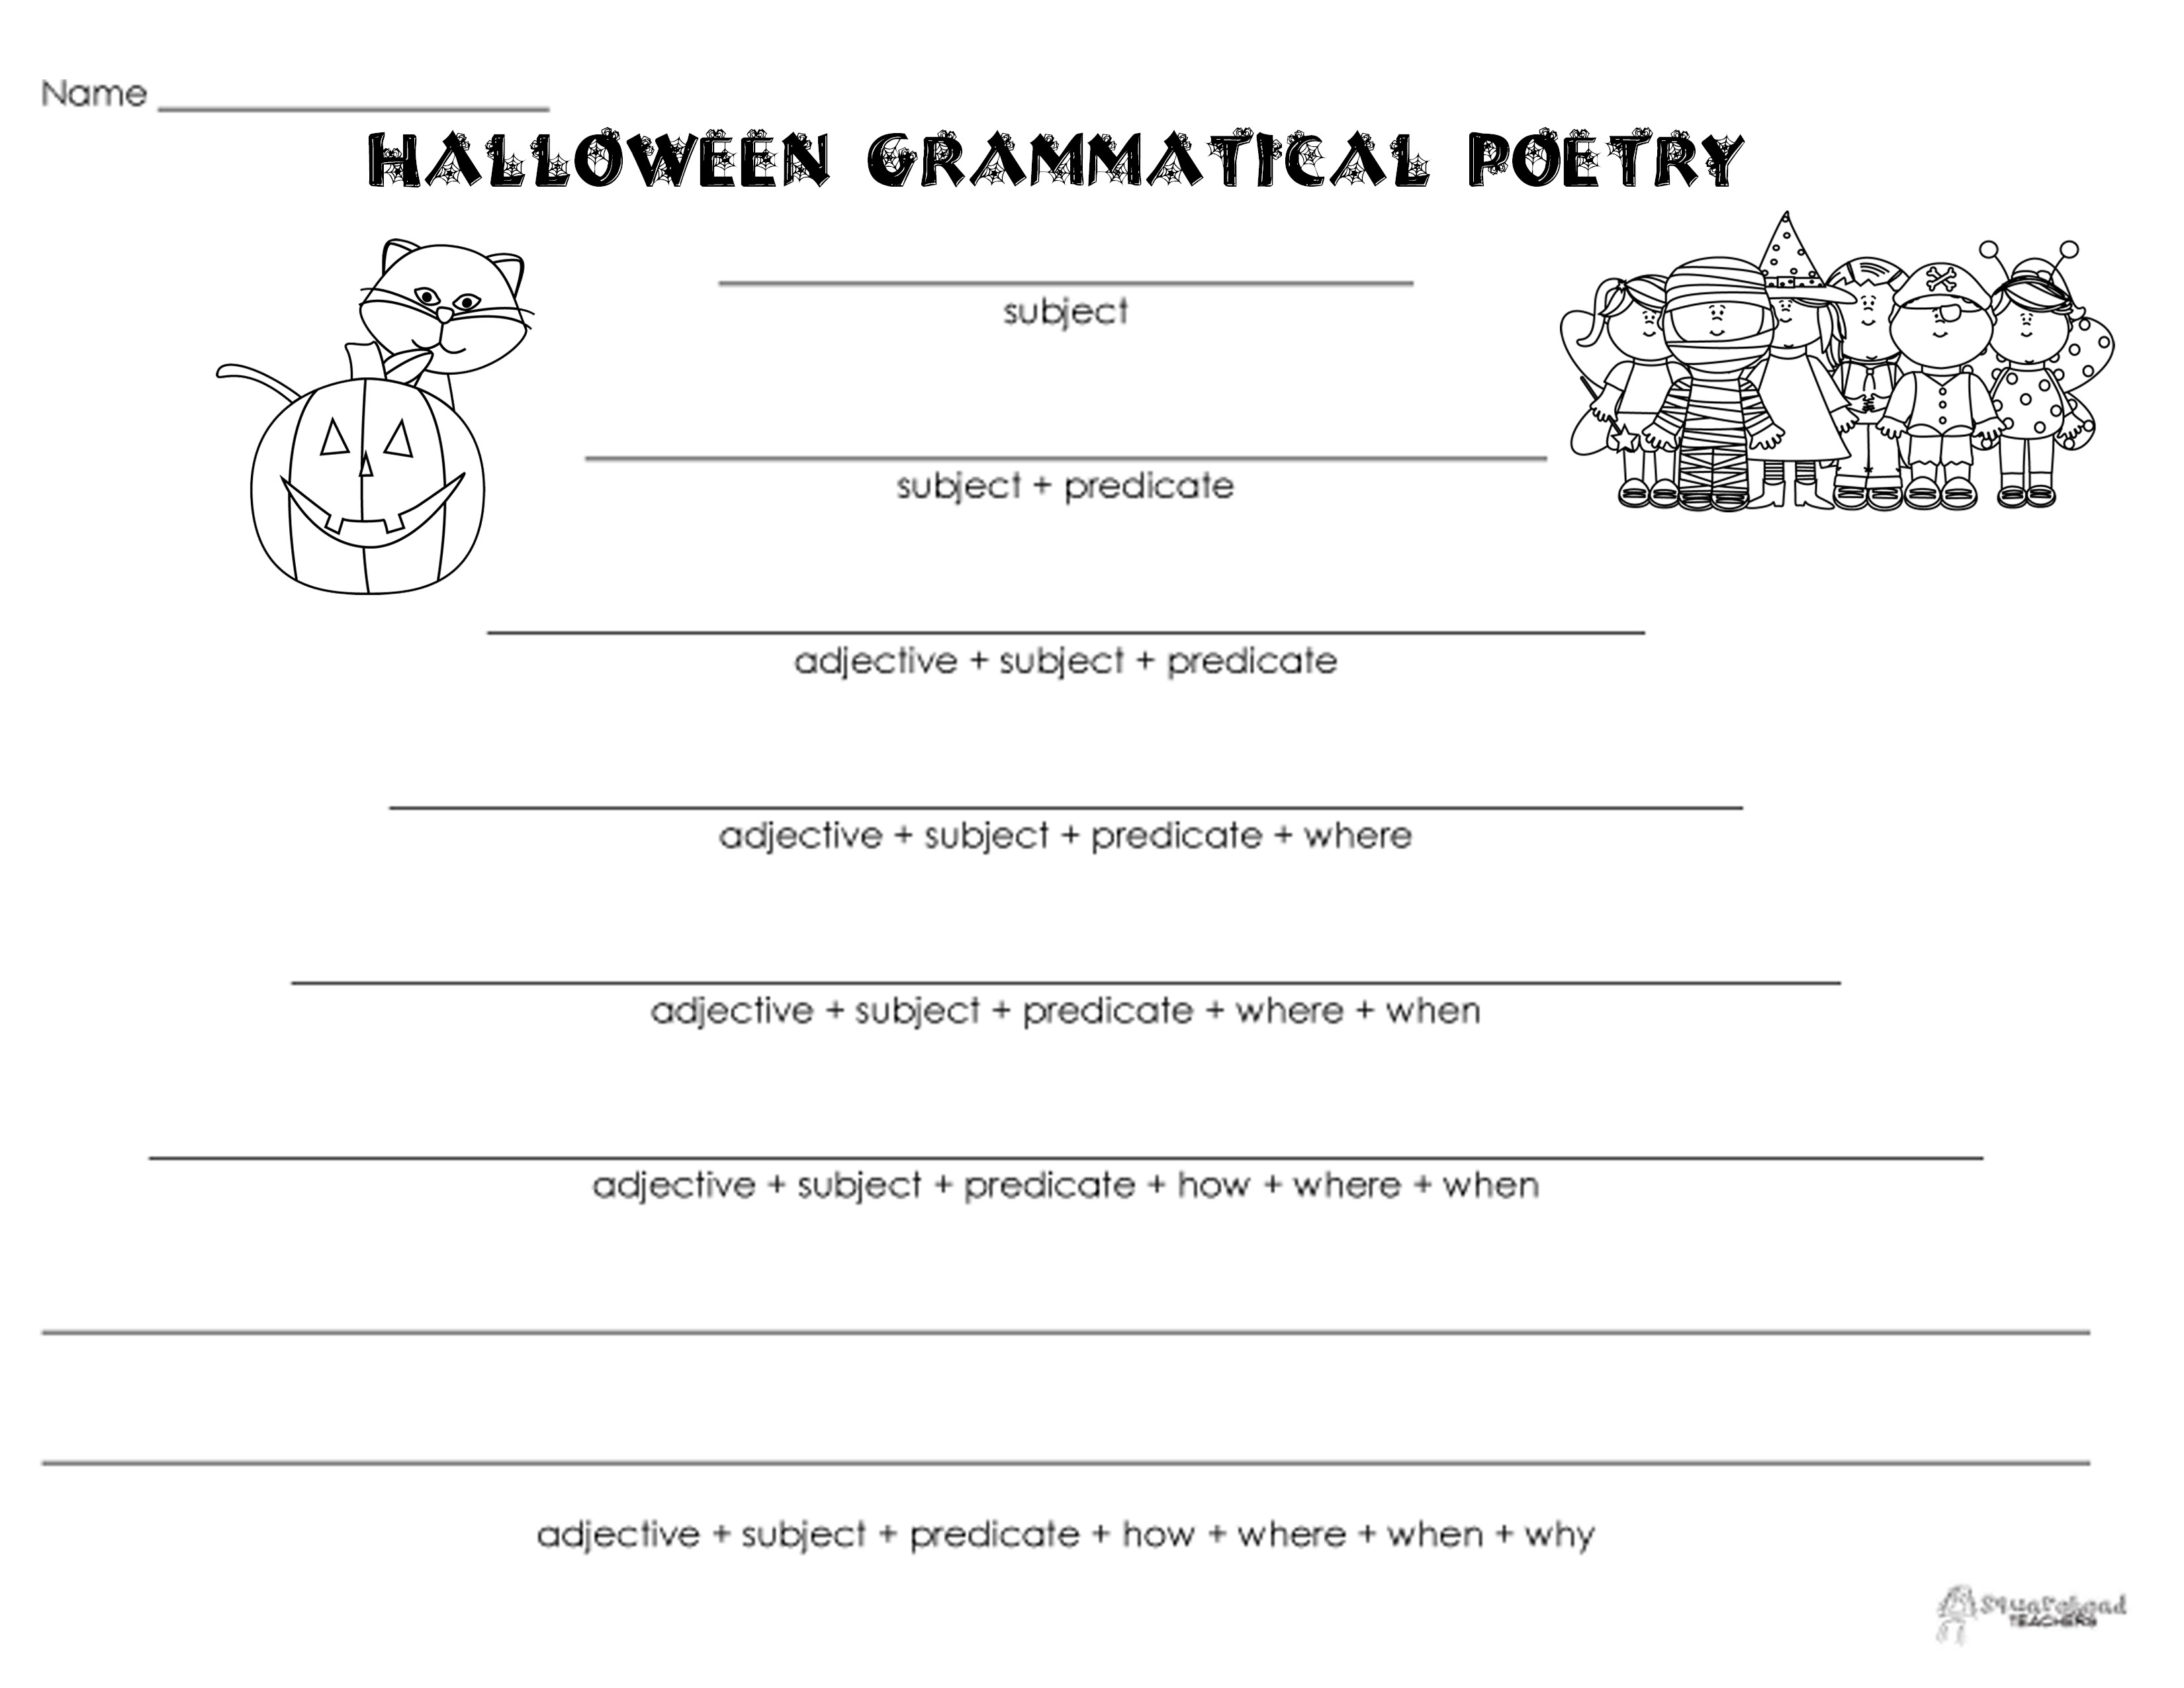 grammatical poetry halloween squarehead teachers. Black Bedroom Furniture Sets. Home Design Ideas